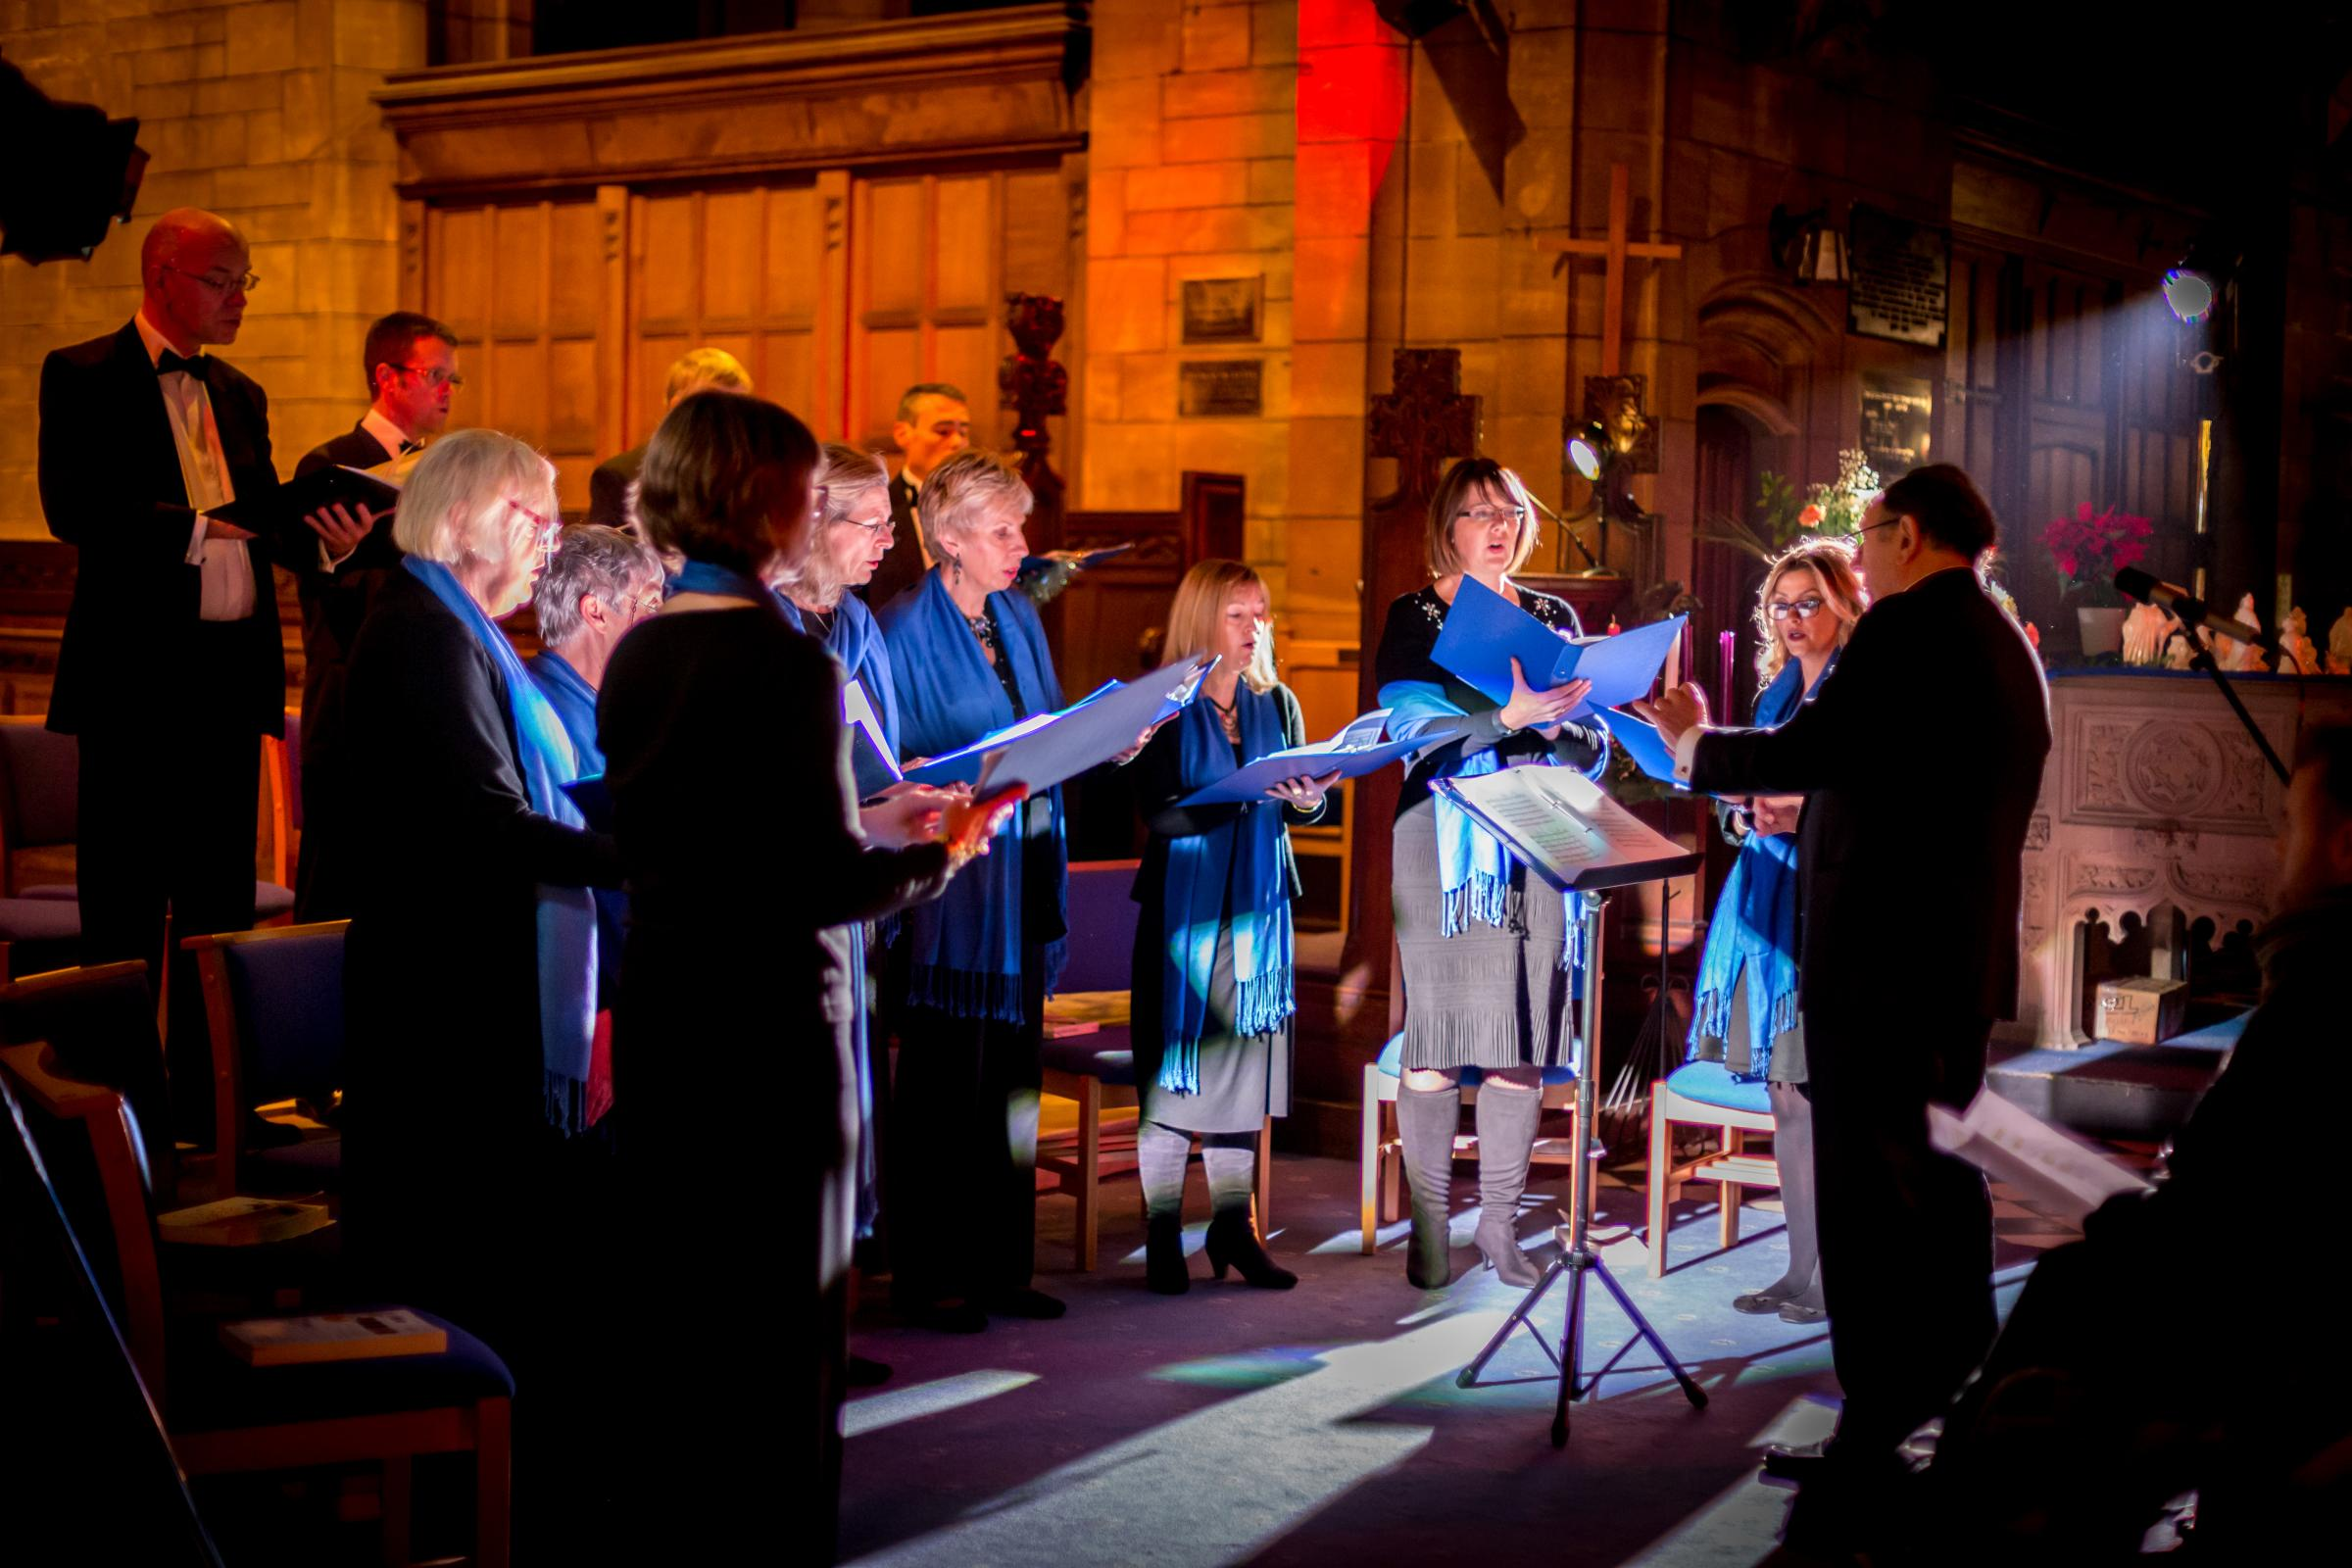 The Vale of Clywd Singers will perform at St Giles Church in Wrexham on Saturday, April 13.